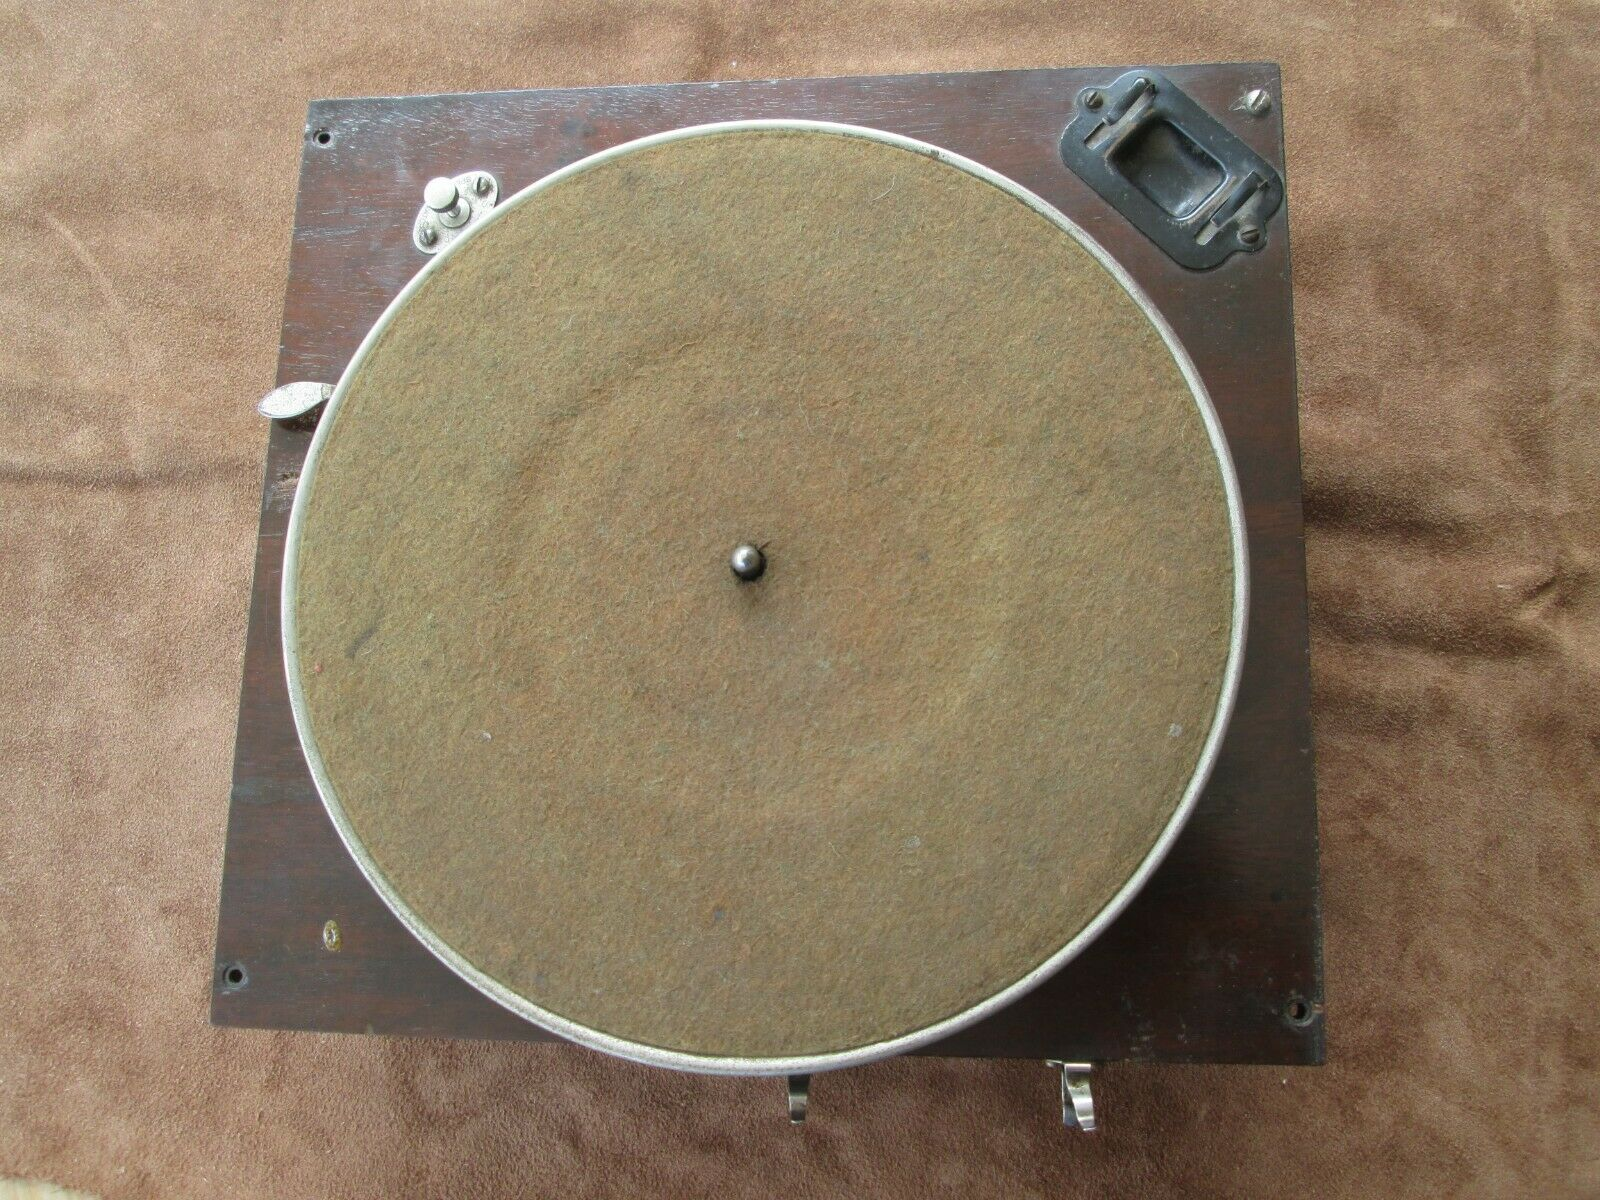 Victrola Talking Machine Turn Table Parts Or Repair 1926 VV1-5 - $24.99